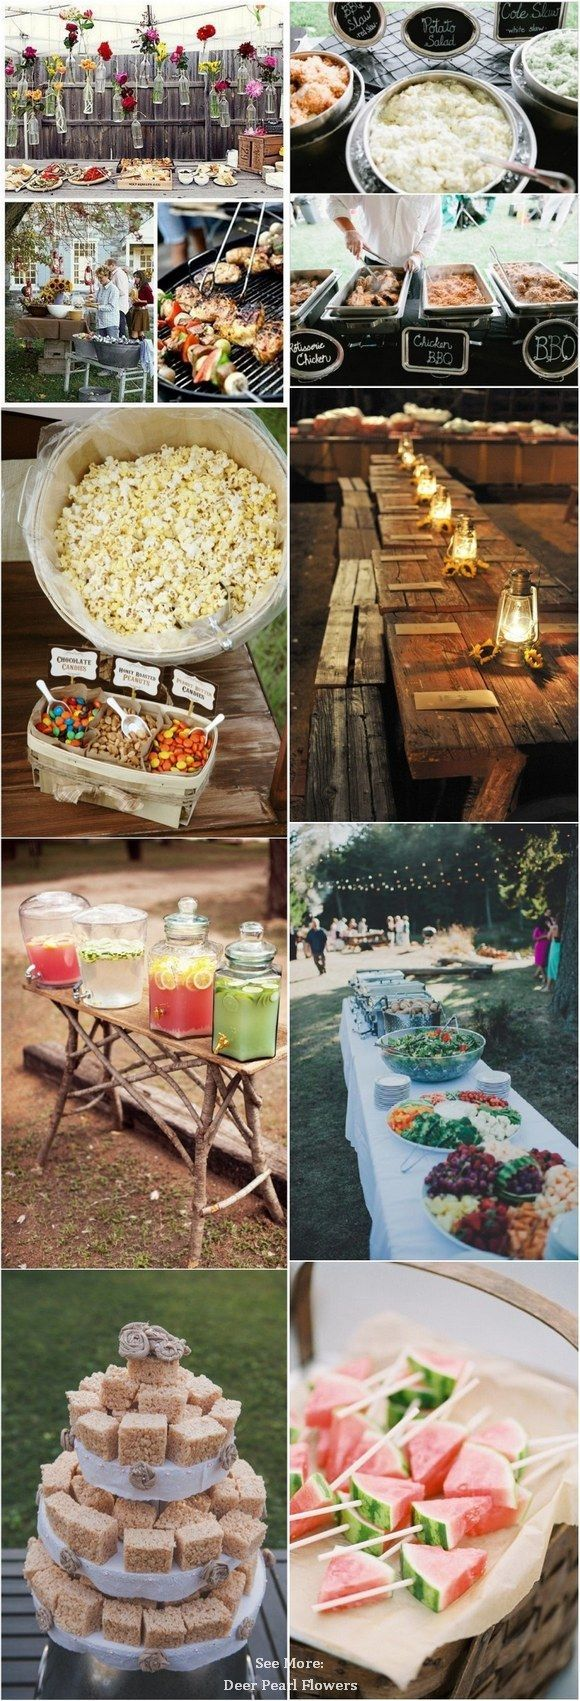 Top 25 Rustic Barbecue BBQ Wedding Ideas | Backyard bbq ...